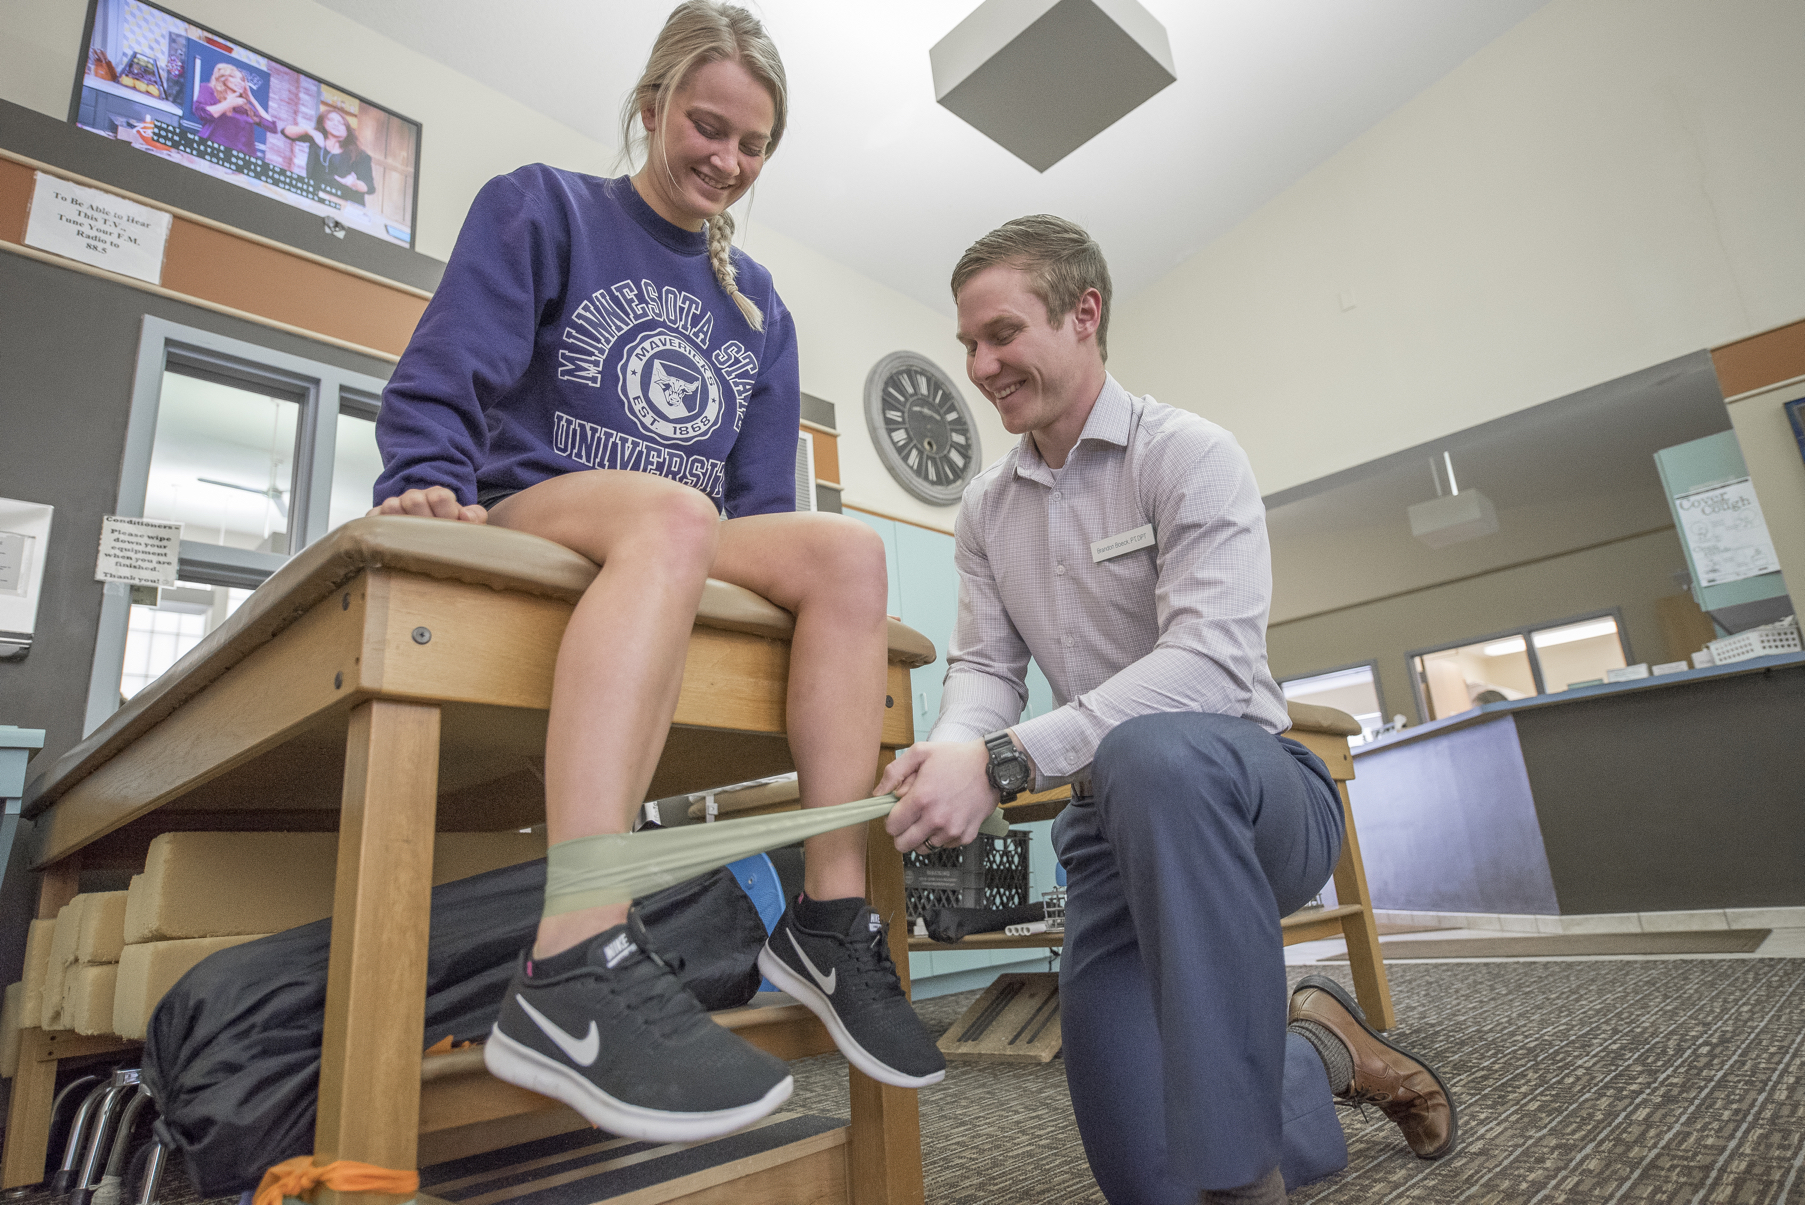 athletic training mankato, athletic trainers for hire, athlete safety tips, back pain, neck pain, headaches, migraines, at home treatment, movement for neck pain, how to treat chronic pain, physical therapy, surgery